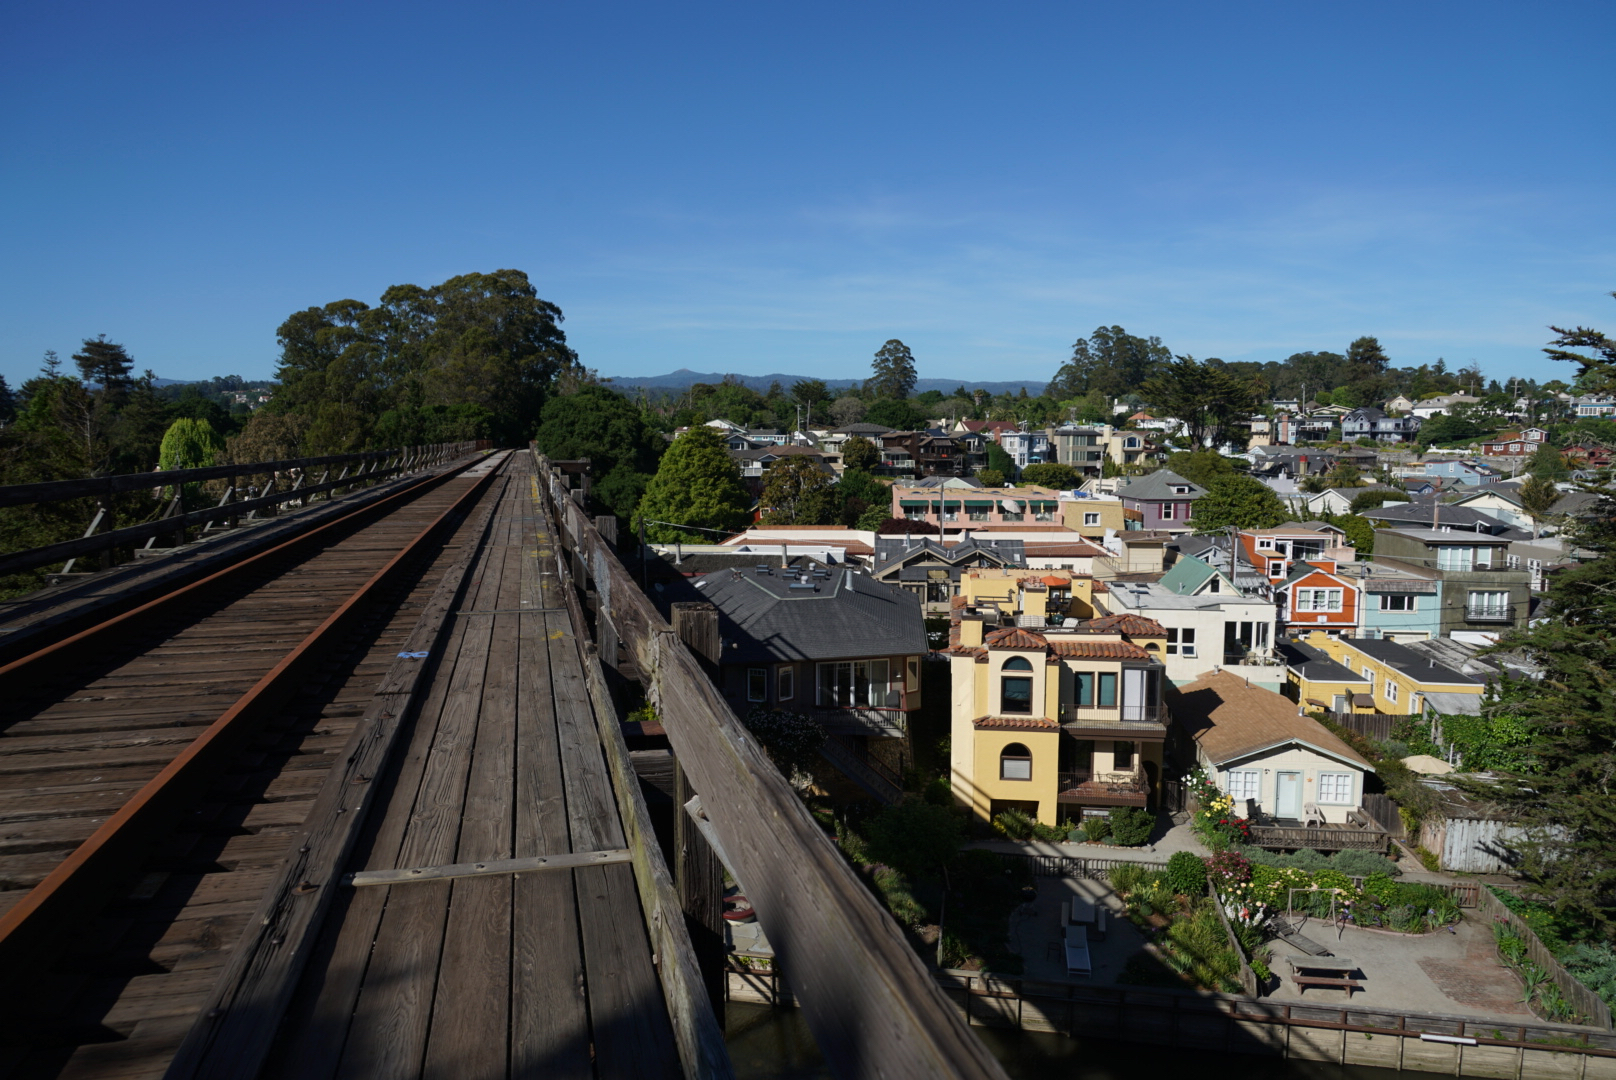 The people of Capitola are afraid that a train might fall into the Village if Iowa Pacific runs another holiday train this winter. They do not want trains crossing their historic trestle.  A majority of people who participated in the May 2016   Vision Capitola: Creating Community   survey said that a trail-only solution would be the best plan for their community.